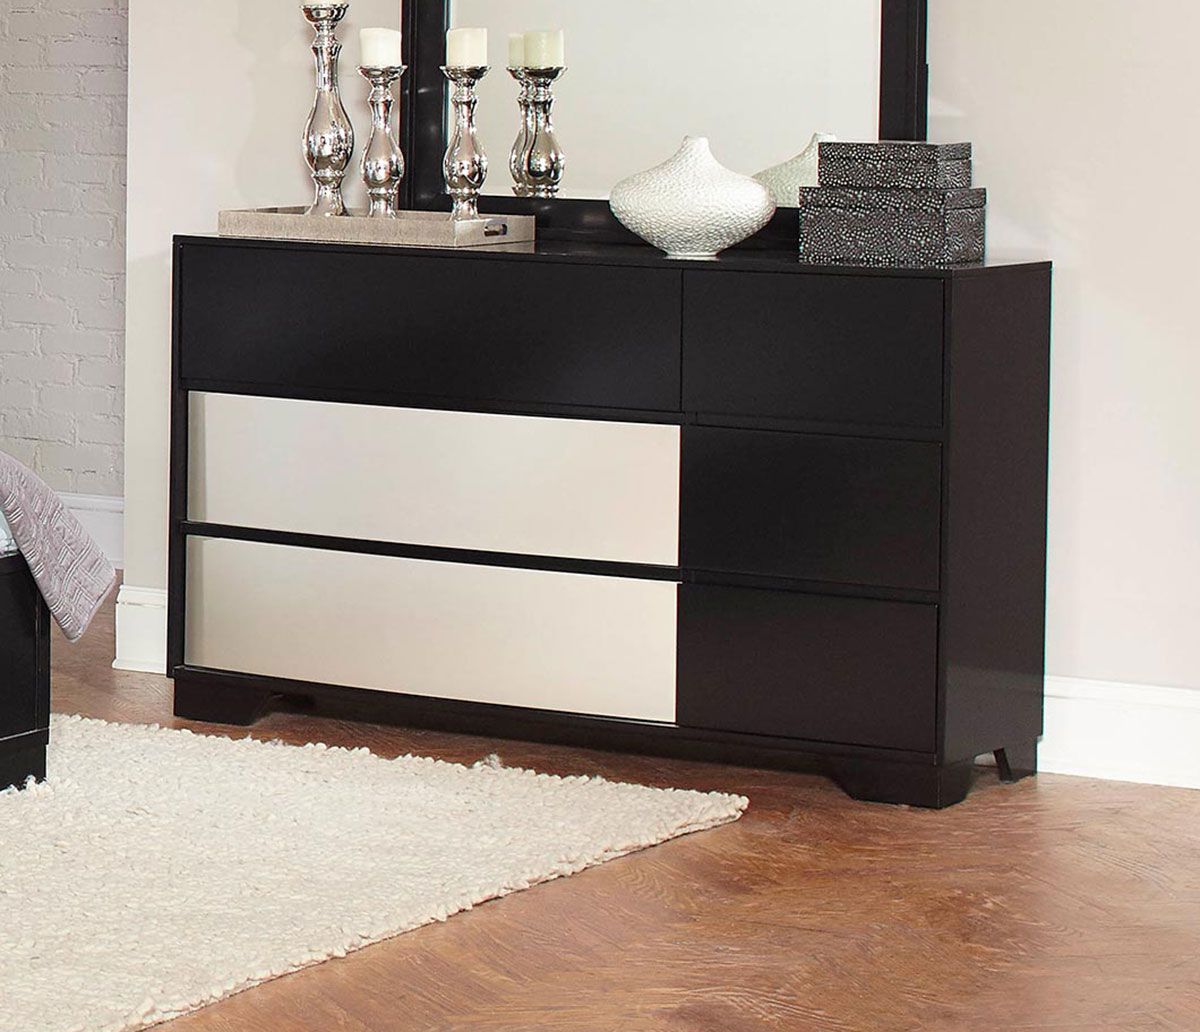 Coaster Havering Dresser - Black/Sterling